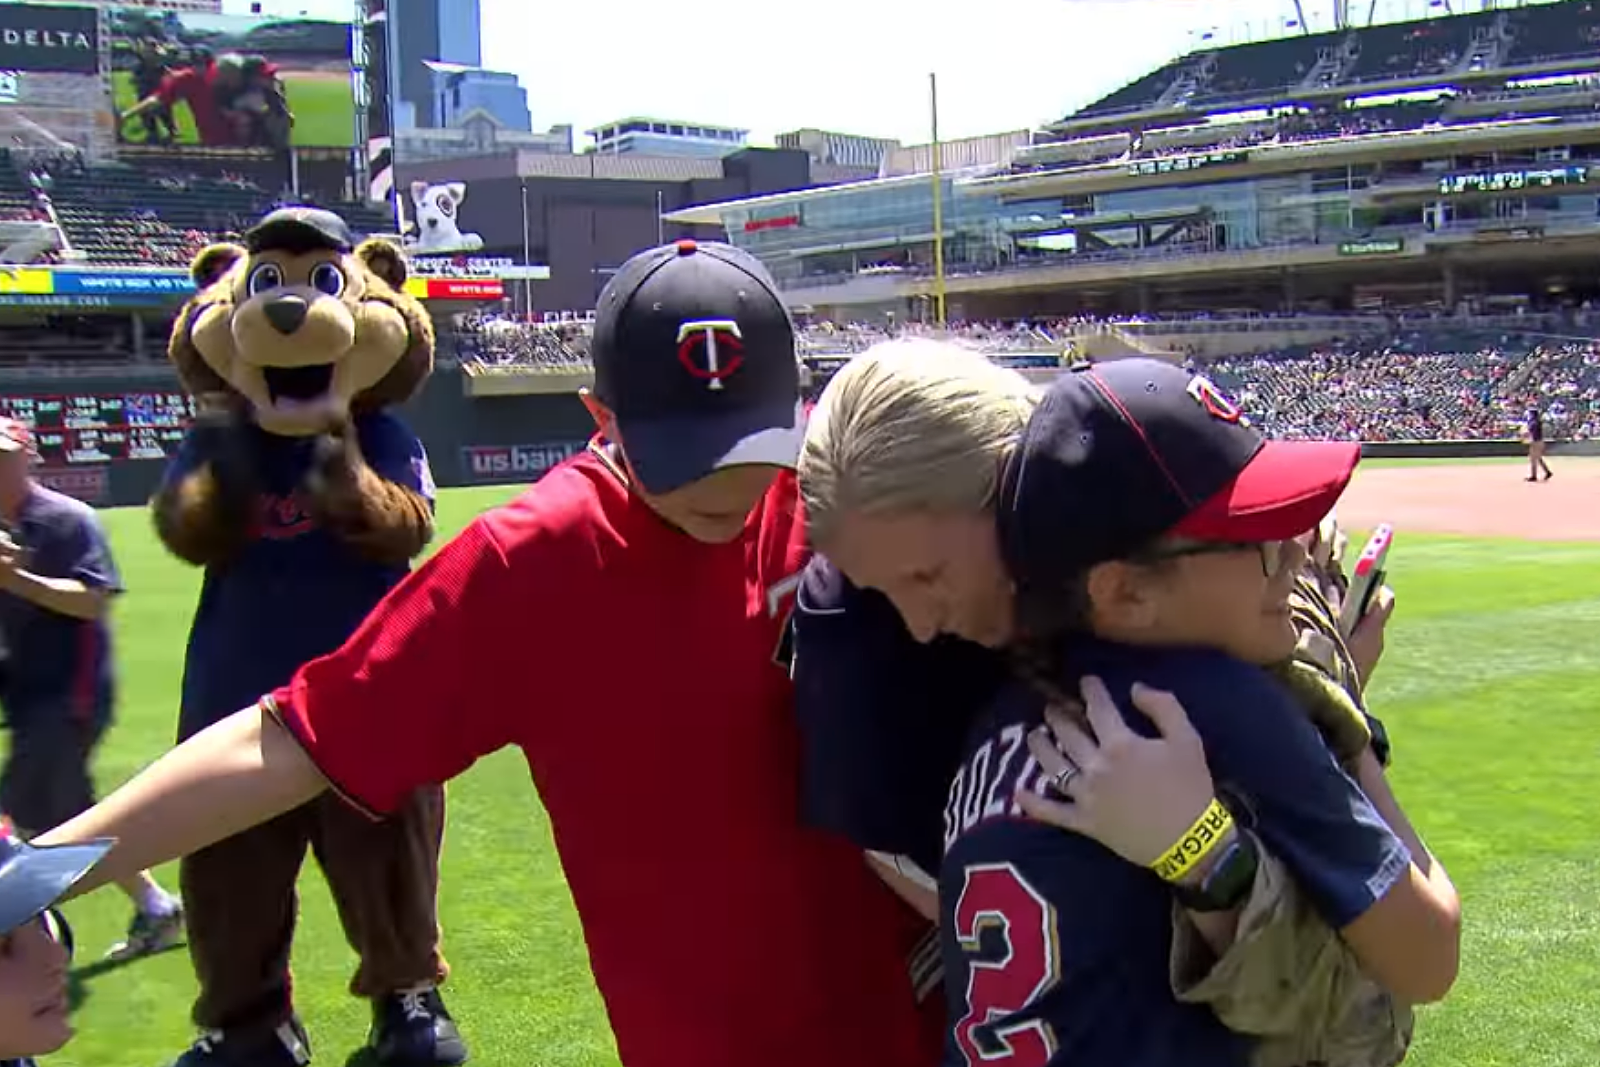 Get Twins Tickets for Just $5 for a Limited Time